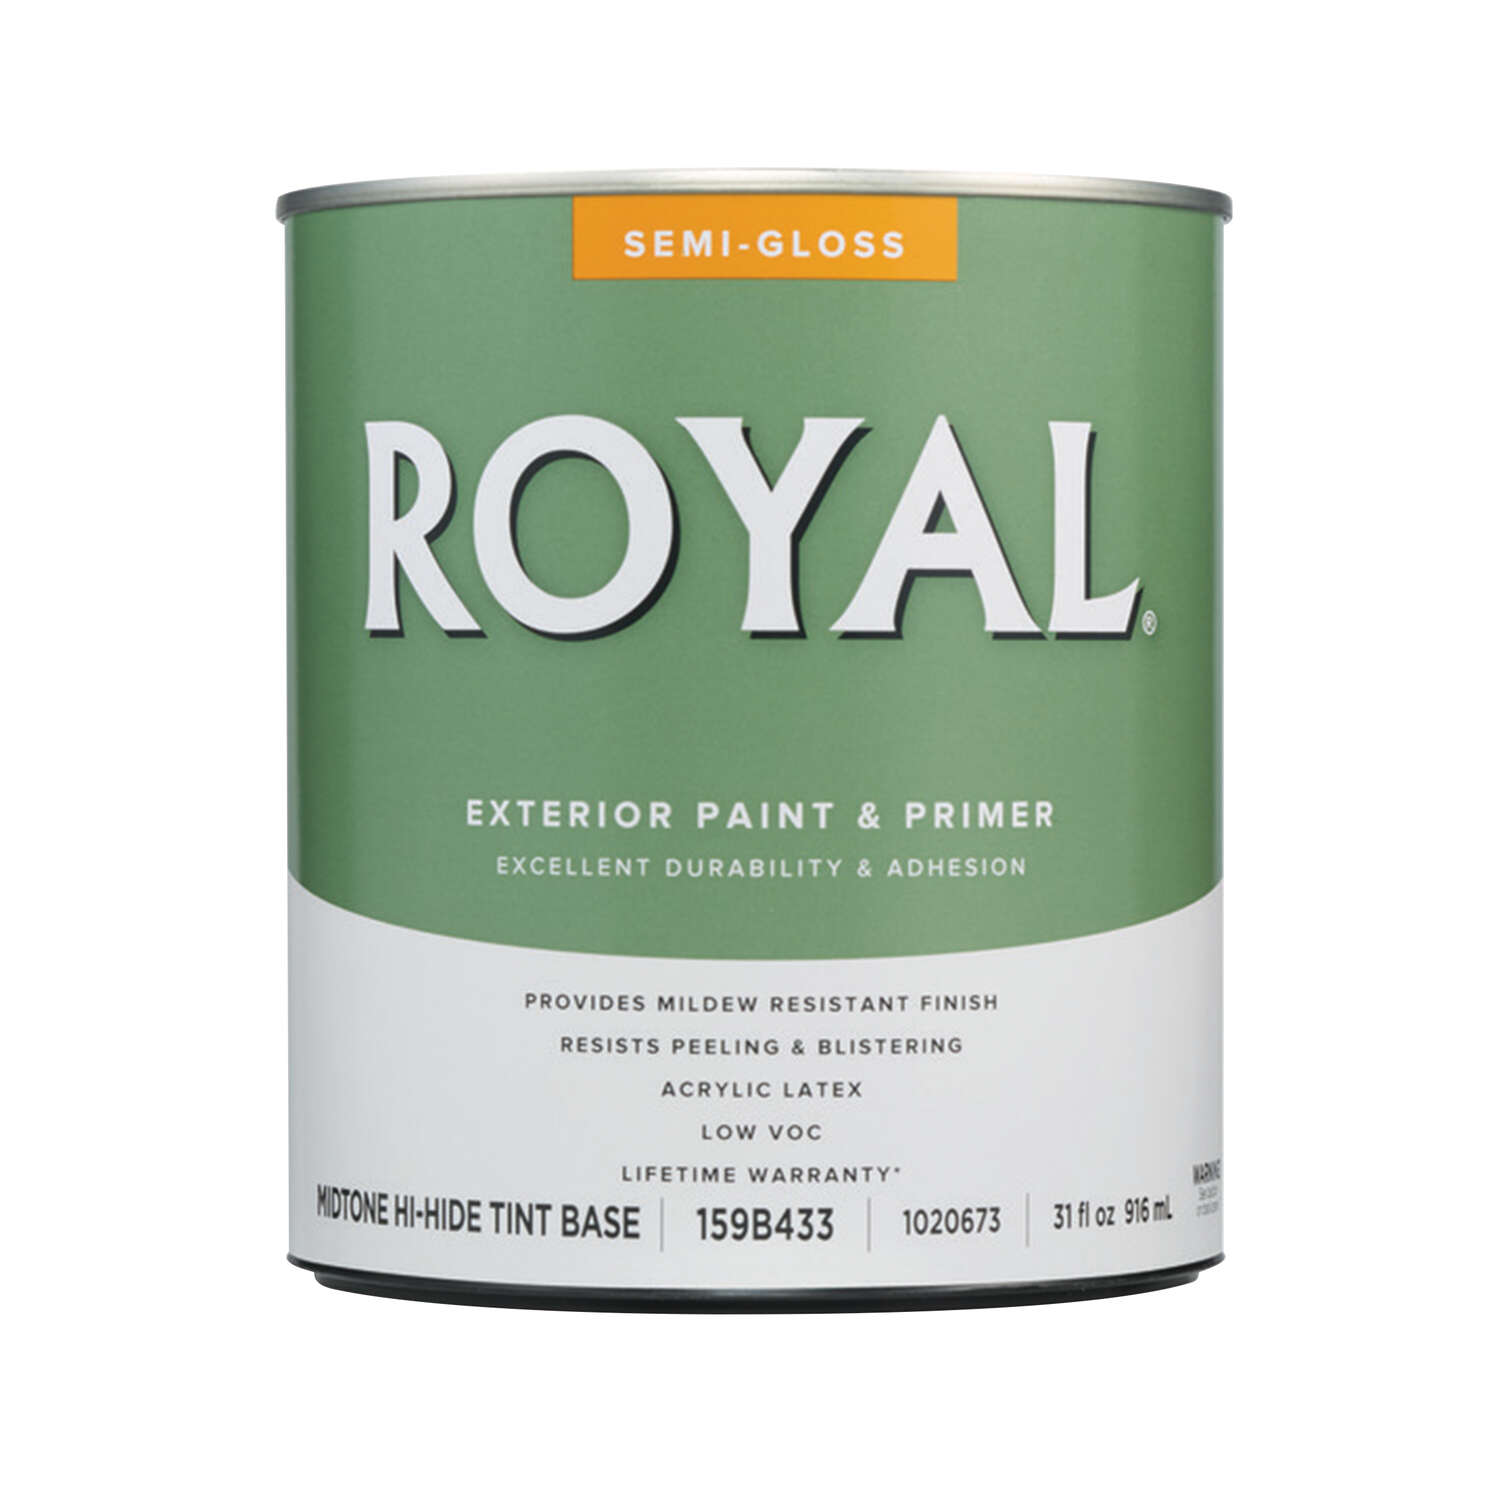 Royal  Semi-Gloss  Tint Base  Mid-Tone Base  Acrylic Latex  Paint  Exterior  1 qt.